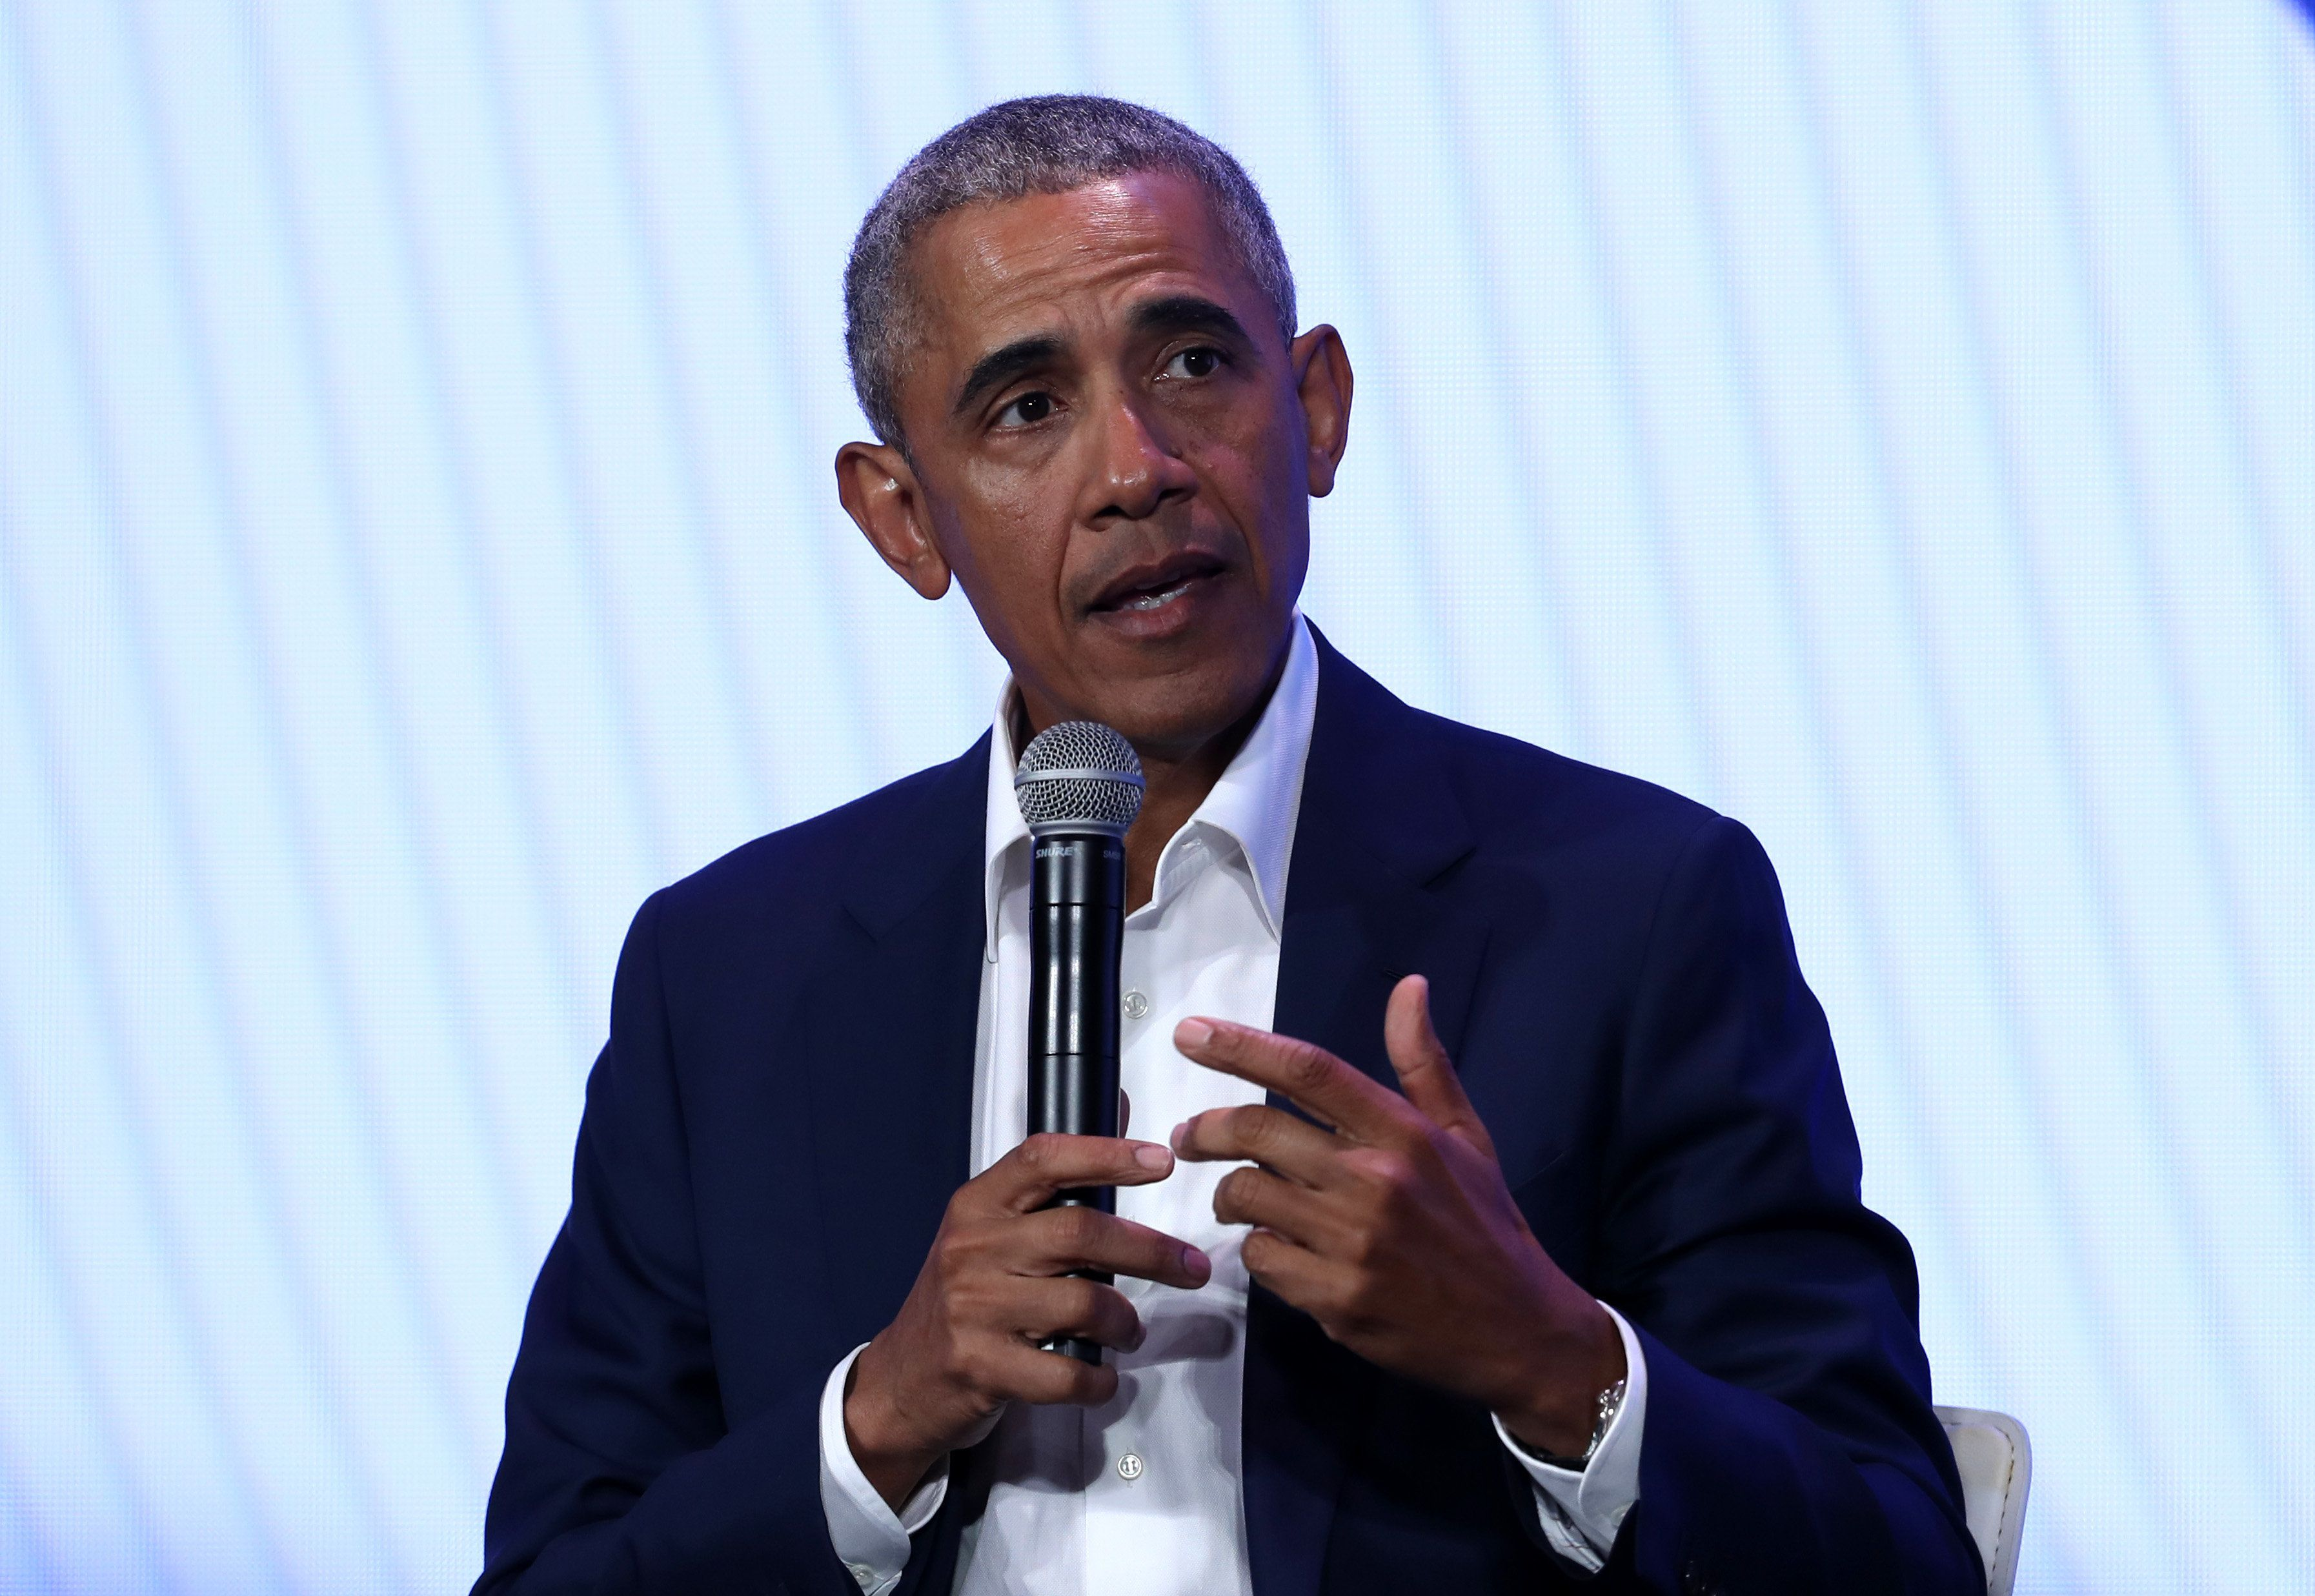 OAKLAND, CALIFORNIA - FEBRUARY 19: Former U.S. President Barack Obama speaks during the MBK Rising! My Brother's Keeper Alliance Summit on February 19, 2019 in Oakland, California.  MBK Rising! is bringing together hundreds of young men of color, local leaders and organizations that are working to reduce youth violence, create impactful mentorship programs, and improving life for young men of color. The My Brother's Keeper initiative was started by President Barack Obama following the death of Trayvon Martin. (Photo by Justin Sullivan/Getty Images)